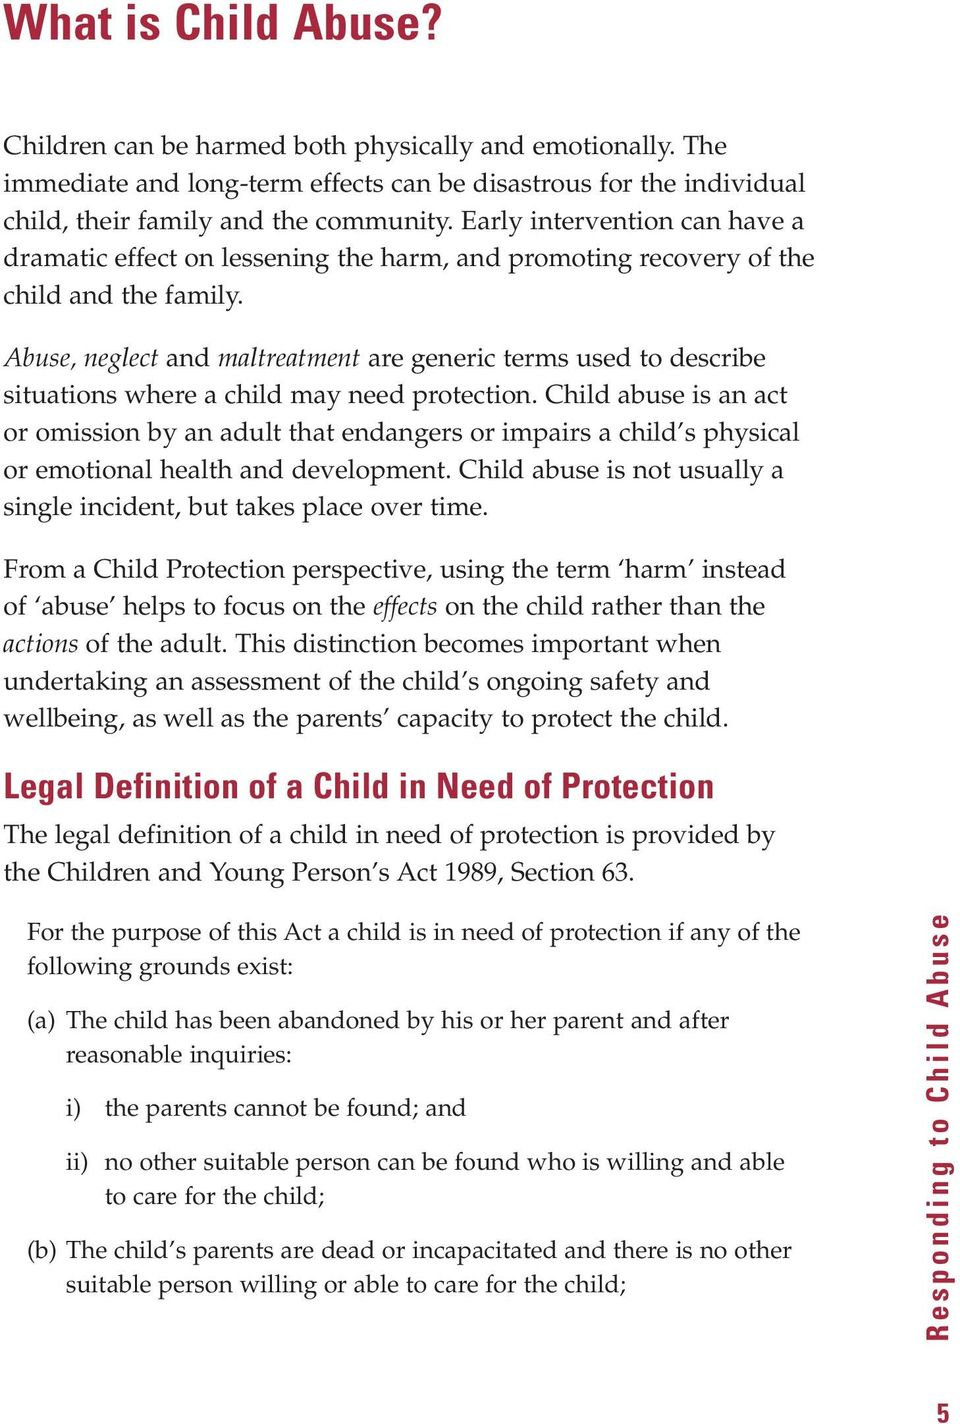 responding to child abuse - pdf